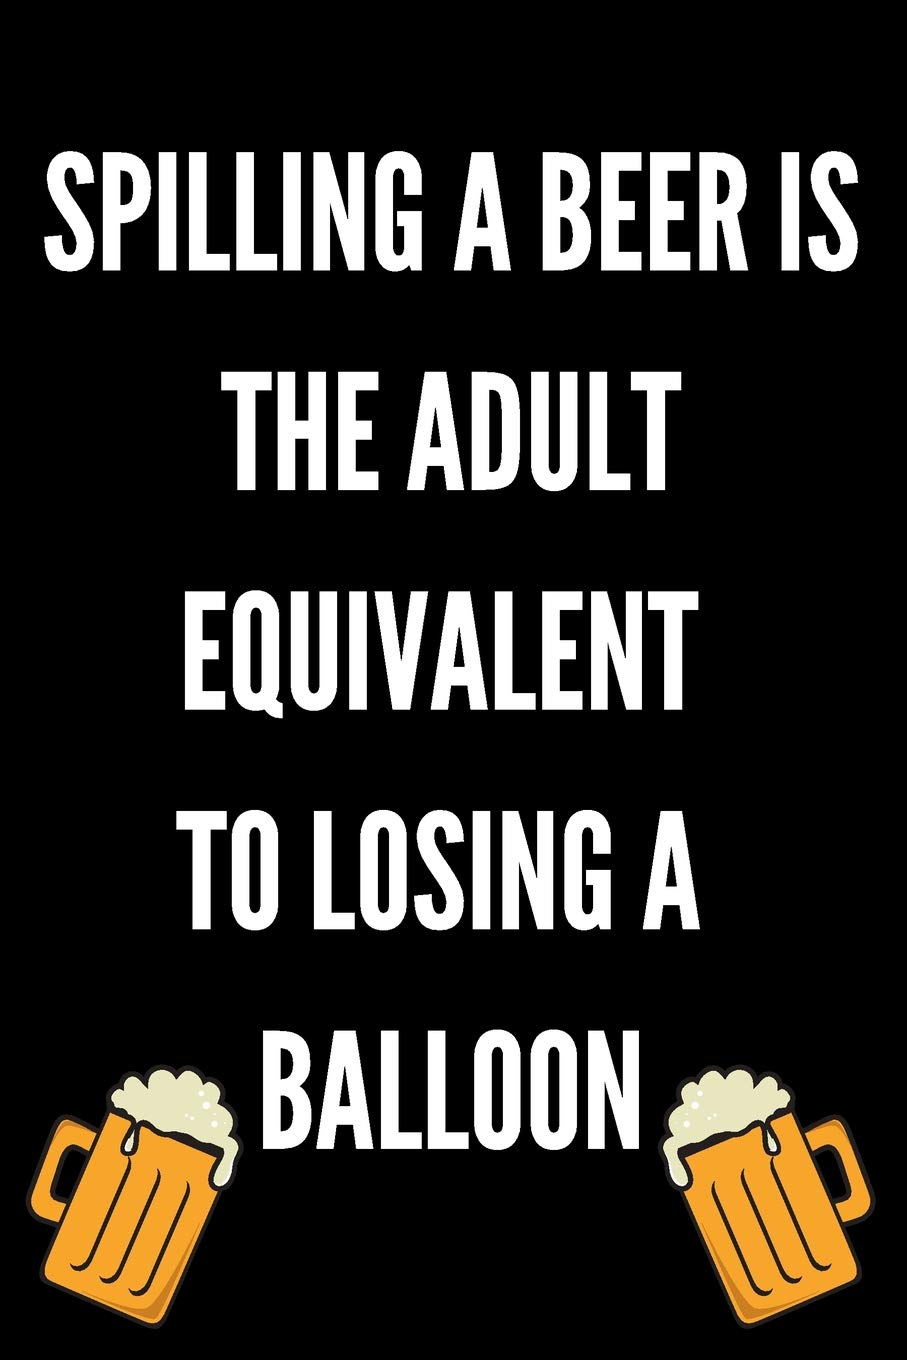 Spilling A Beer Is The Adult Equivalent To Losing A Balloon ...